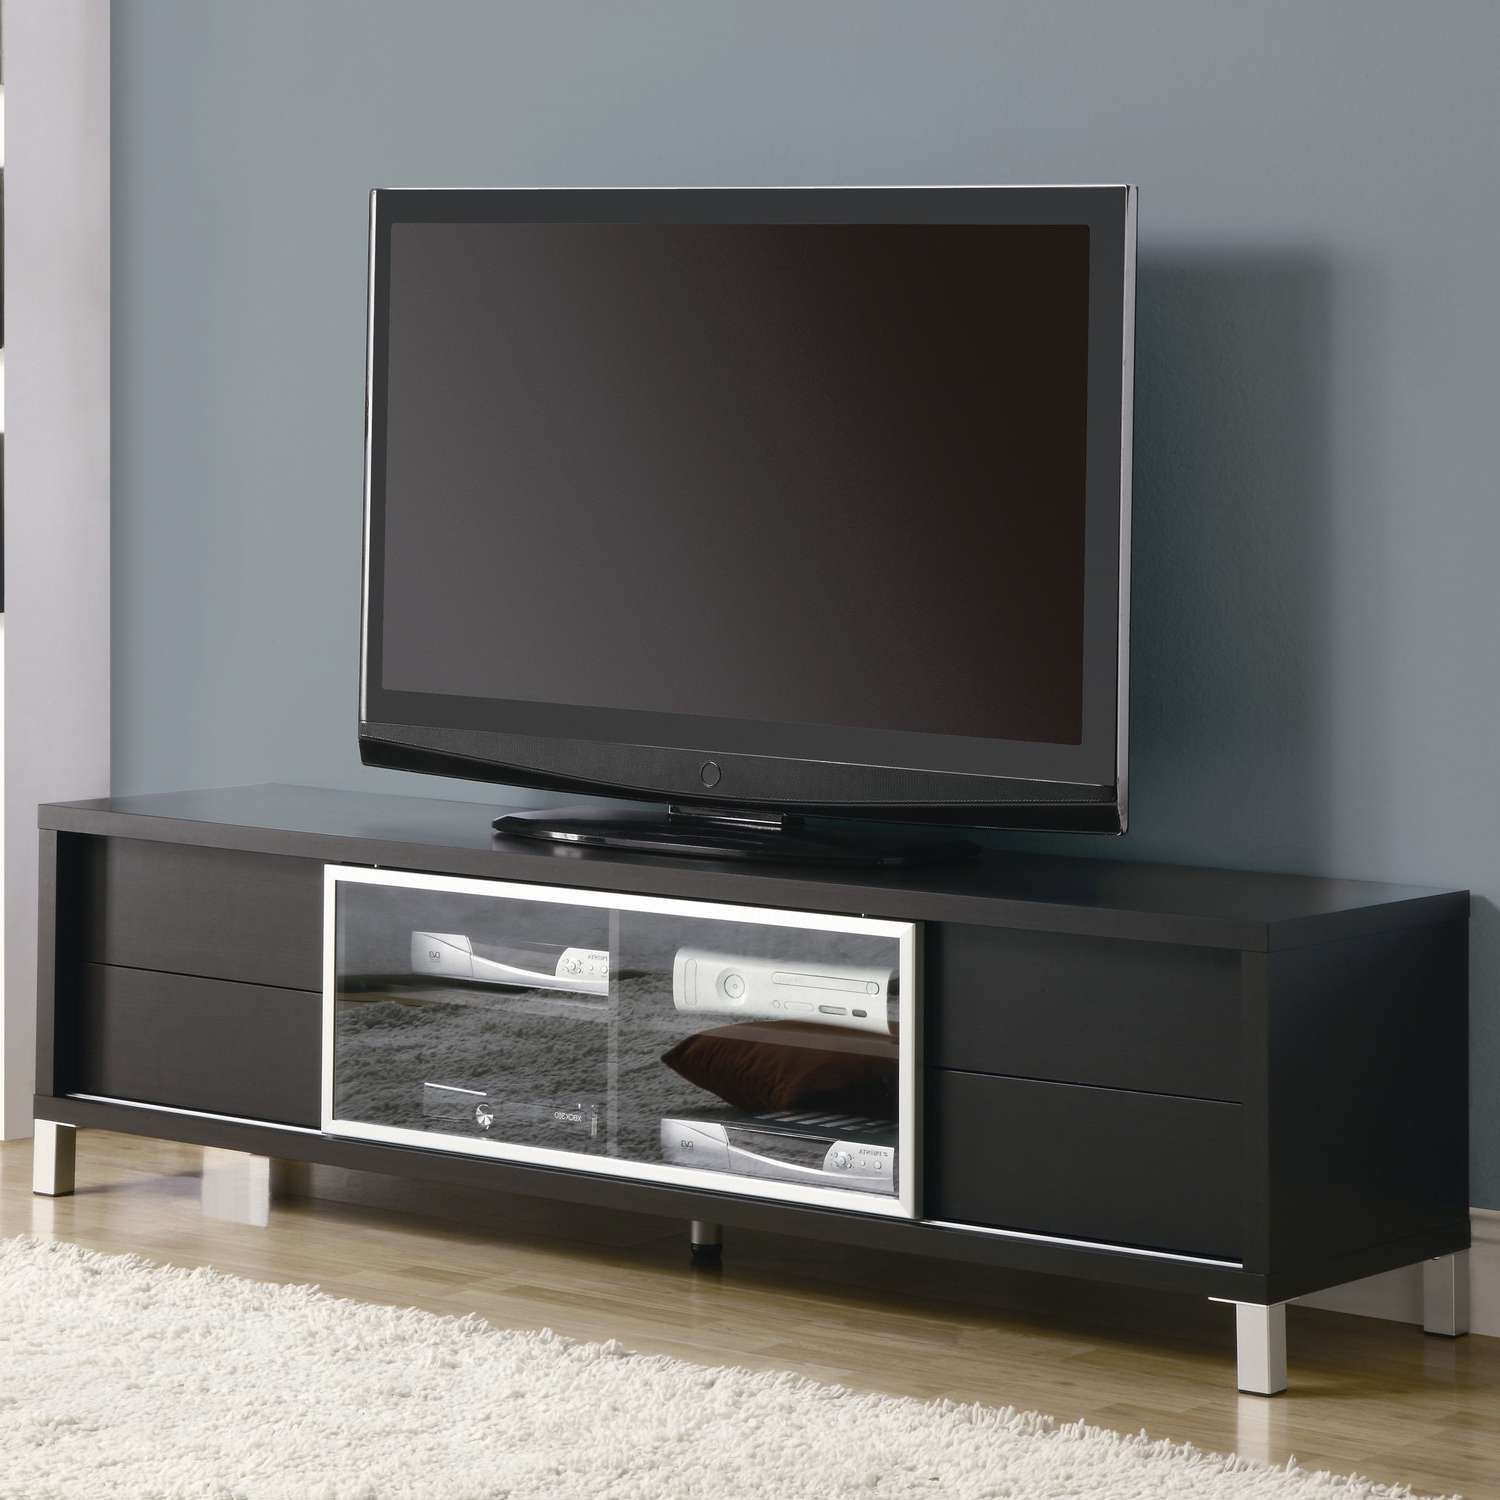 Small Flat Screen Tv For Sale In Smashing Wood Oak Tv Stand Along Intended For Long Black Tv Stands (View 12 of 15)